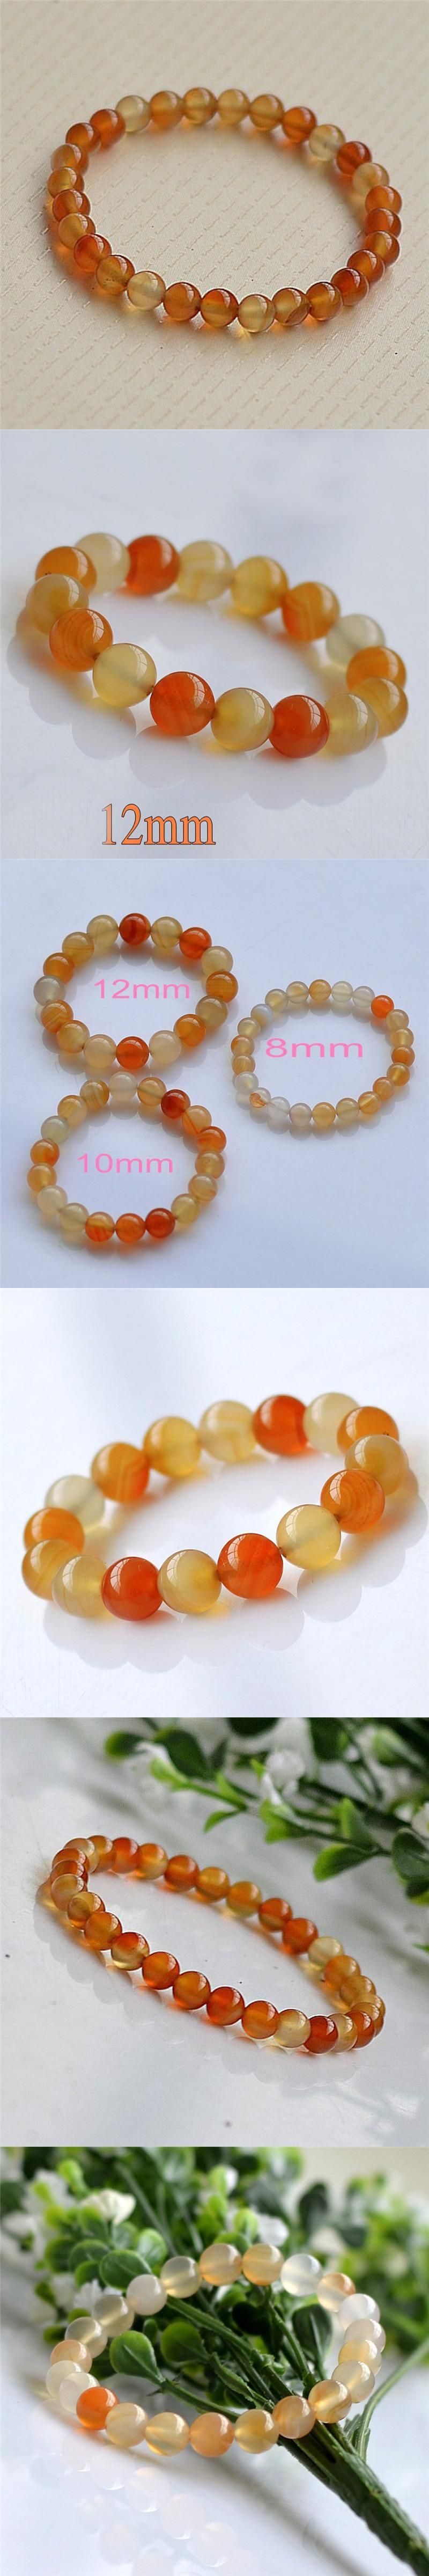 Wholesale fashion bracelet for women high quality natural stone